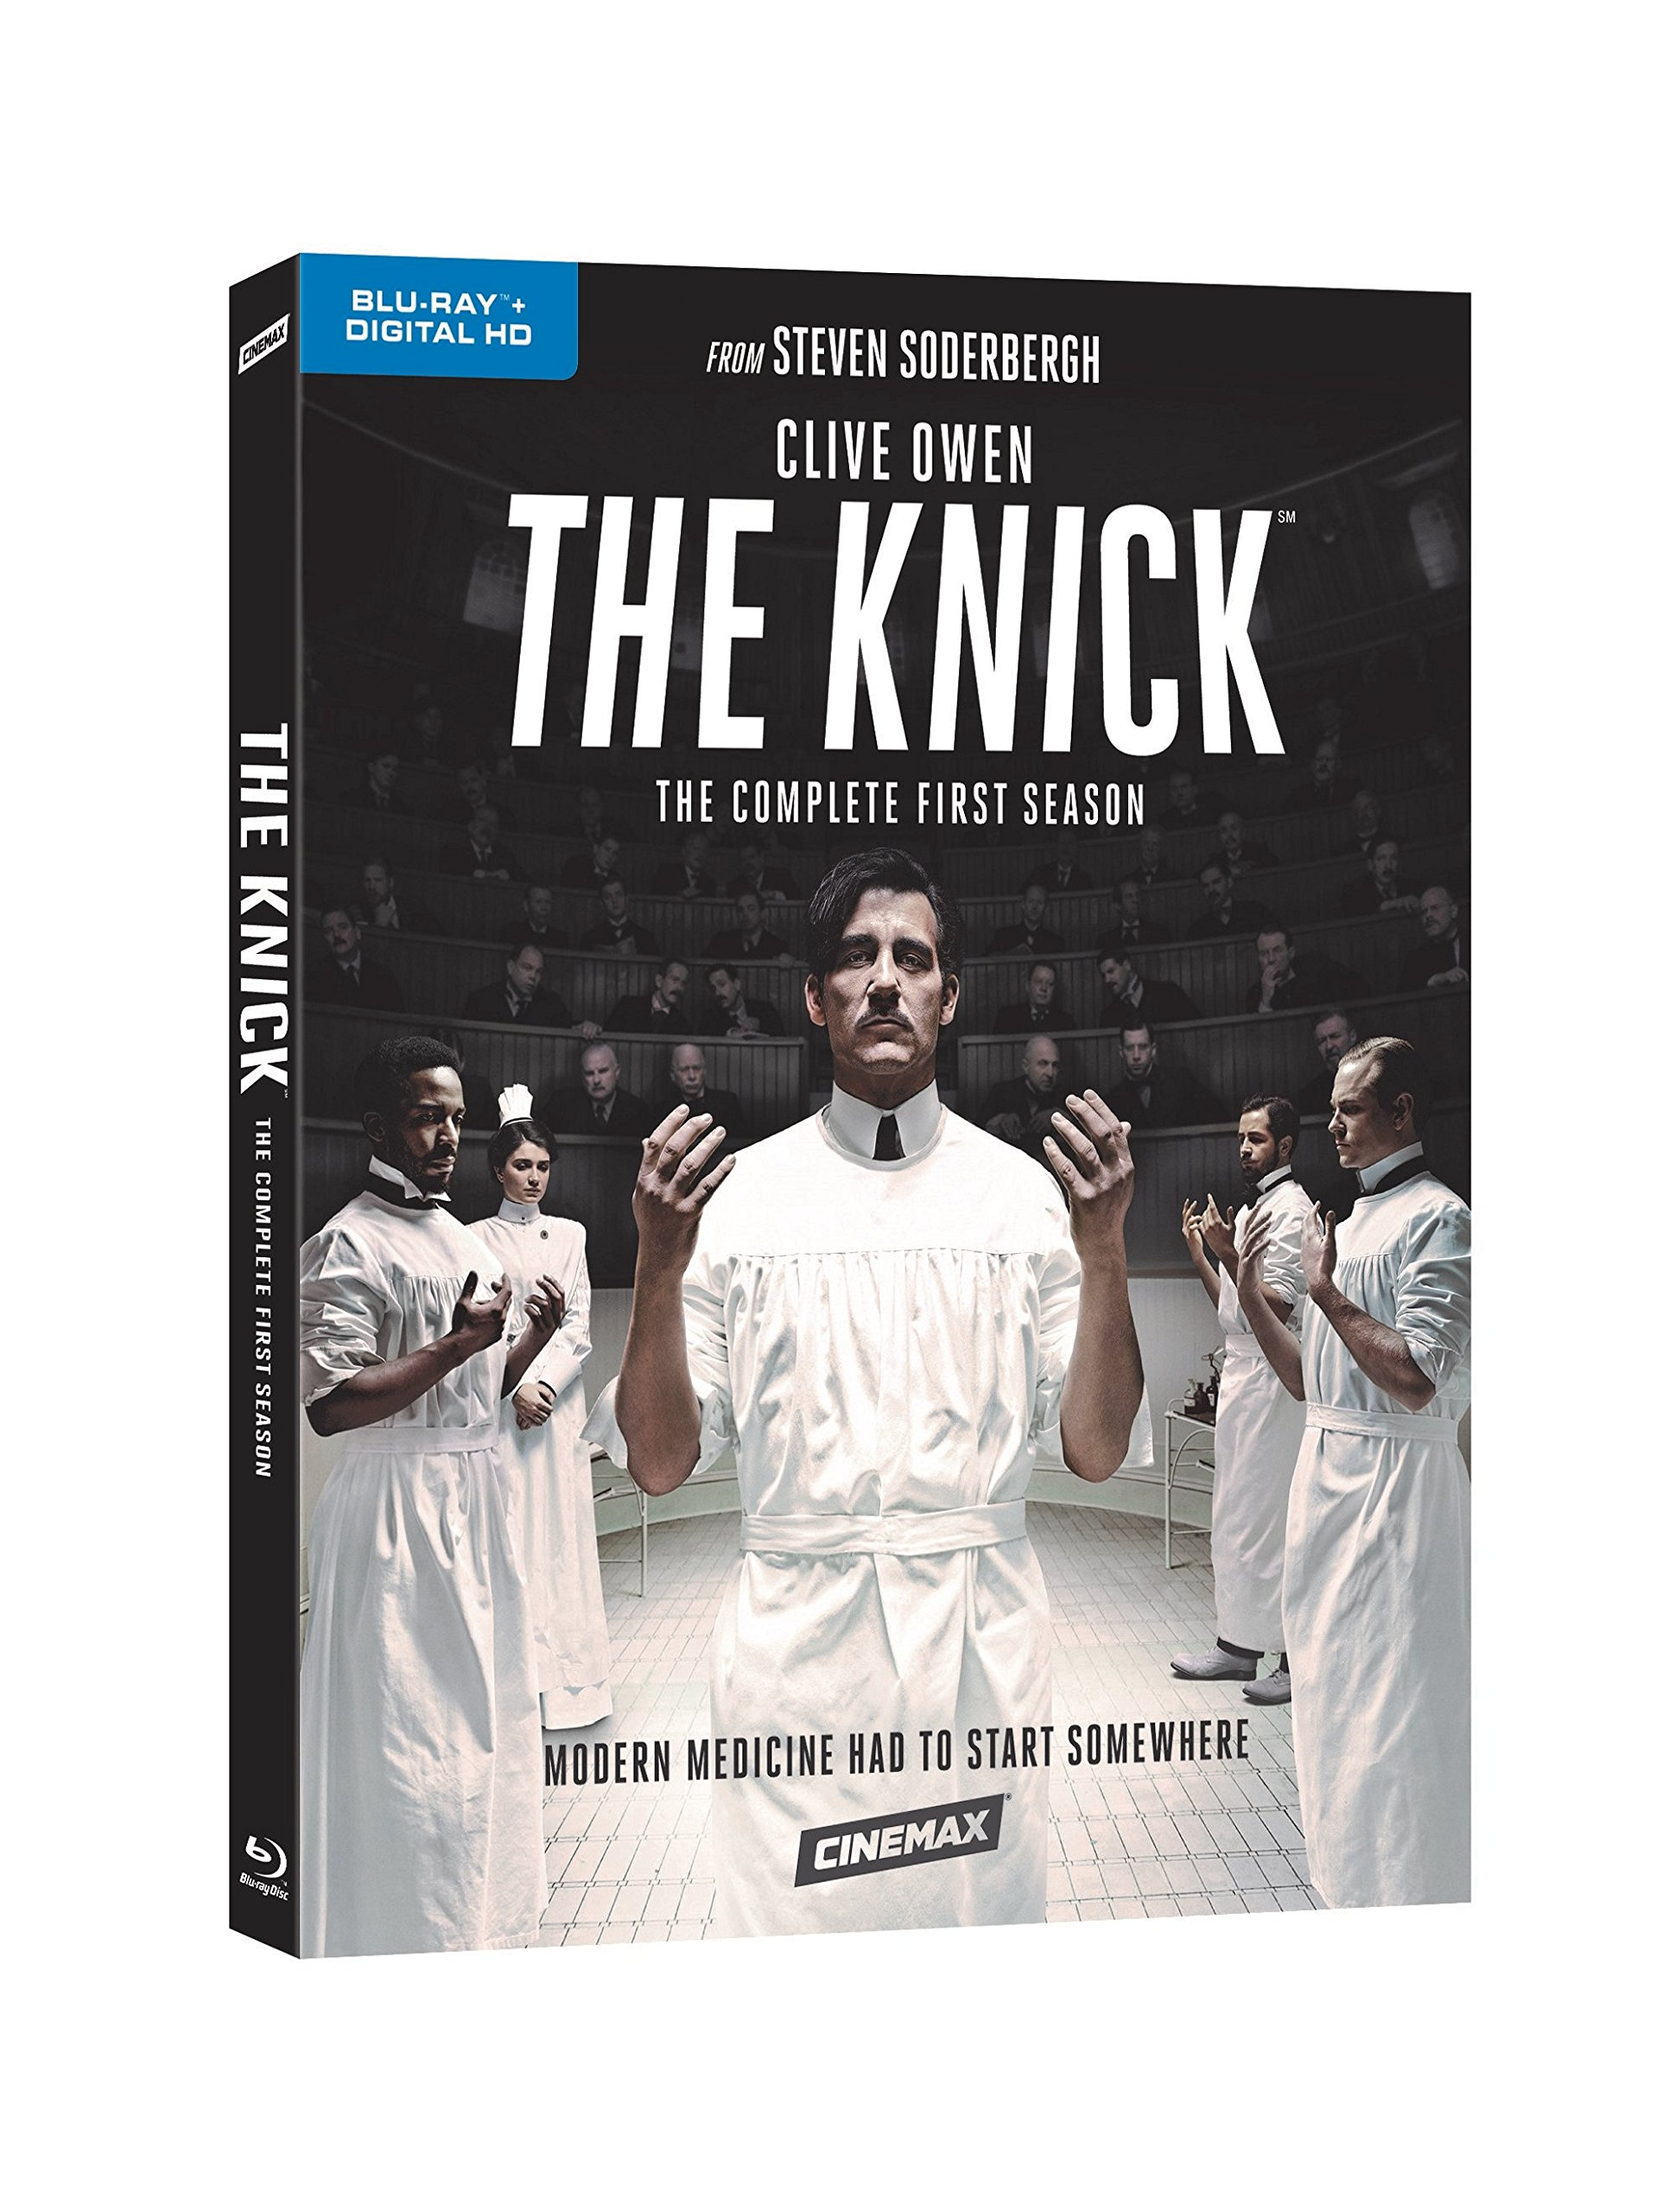 Blu-ray : The Knick: The Complete First Season (Boxed Set, Full Frame, , Digital Copy, 4 Disc)